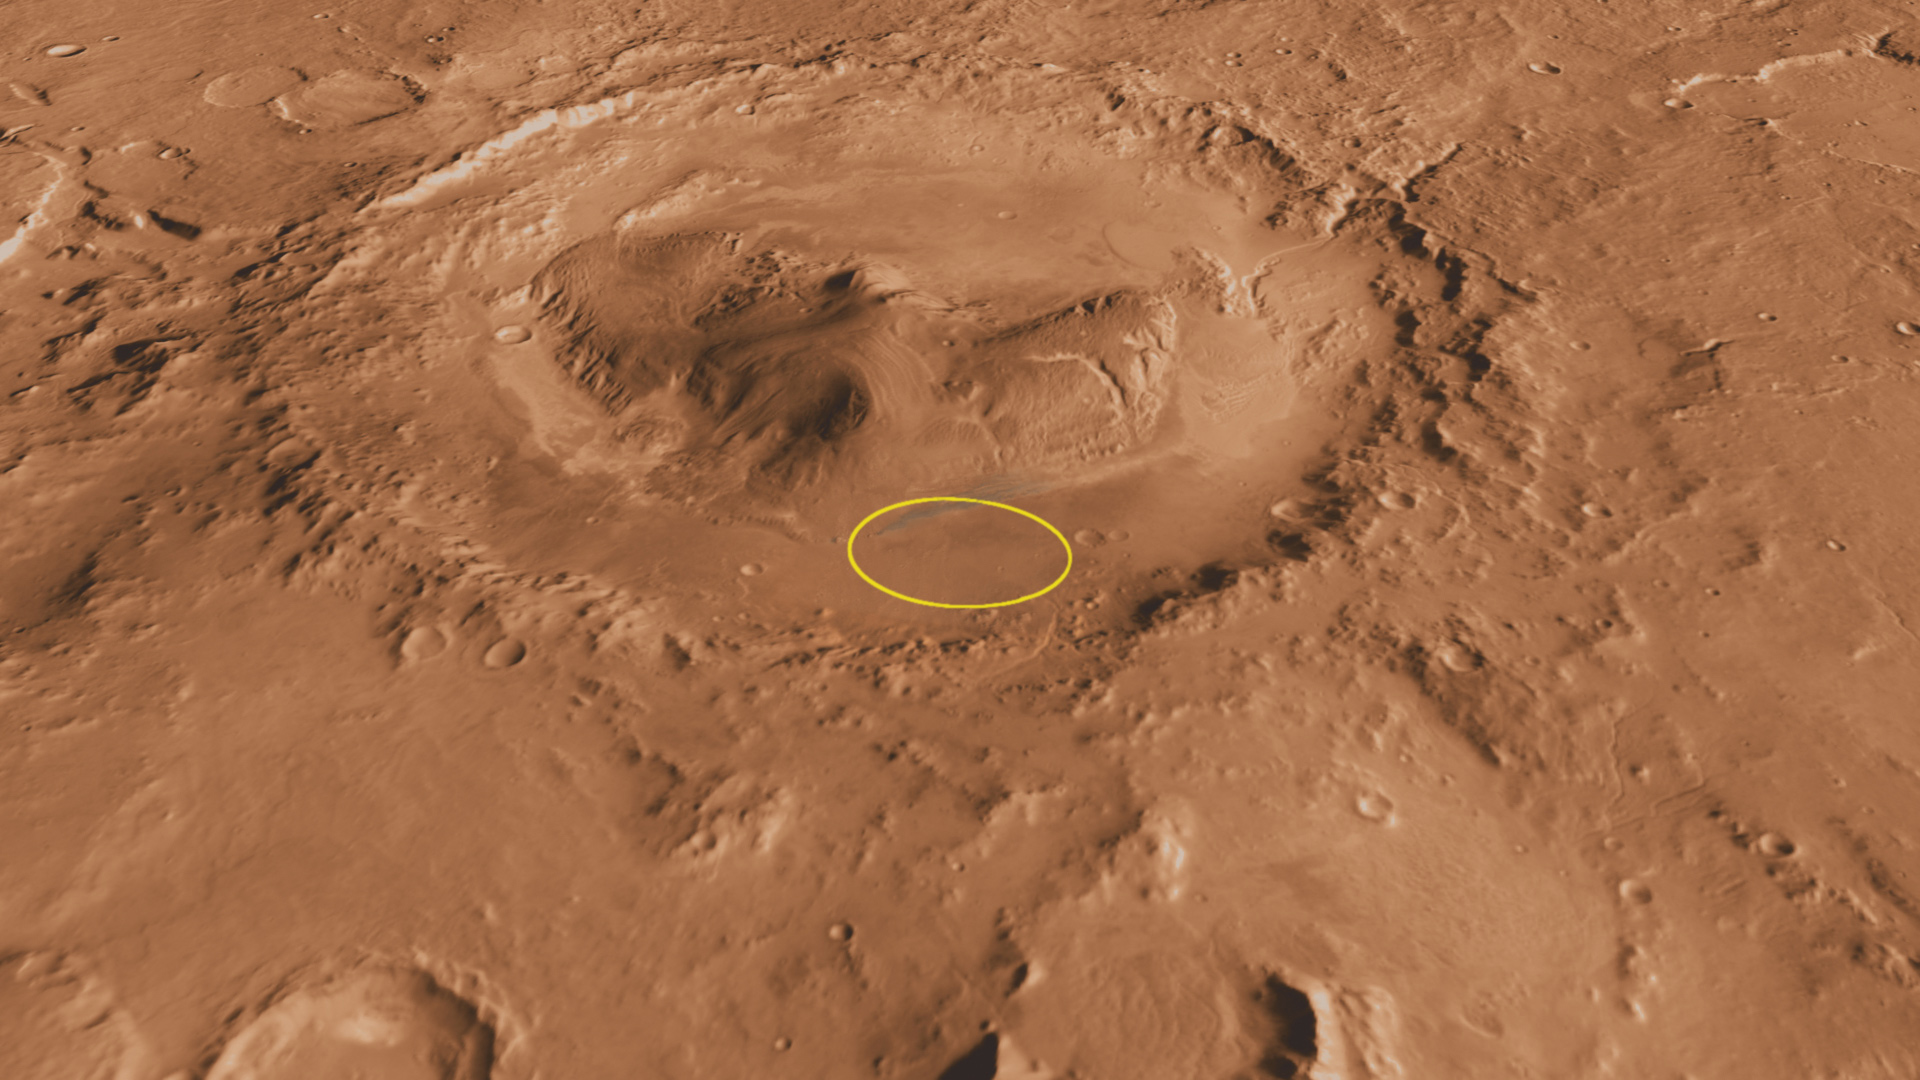 Context of Curiosity Landing Site in Gale Crater, with Ellipse